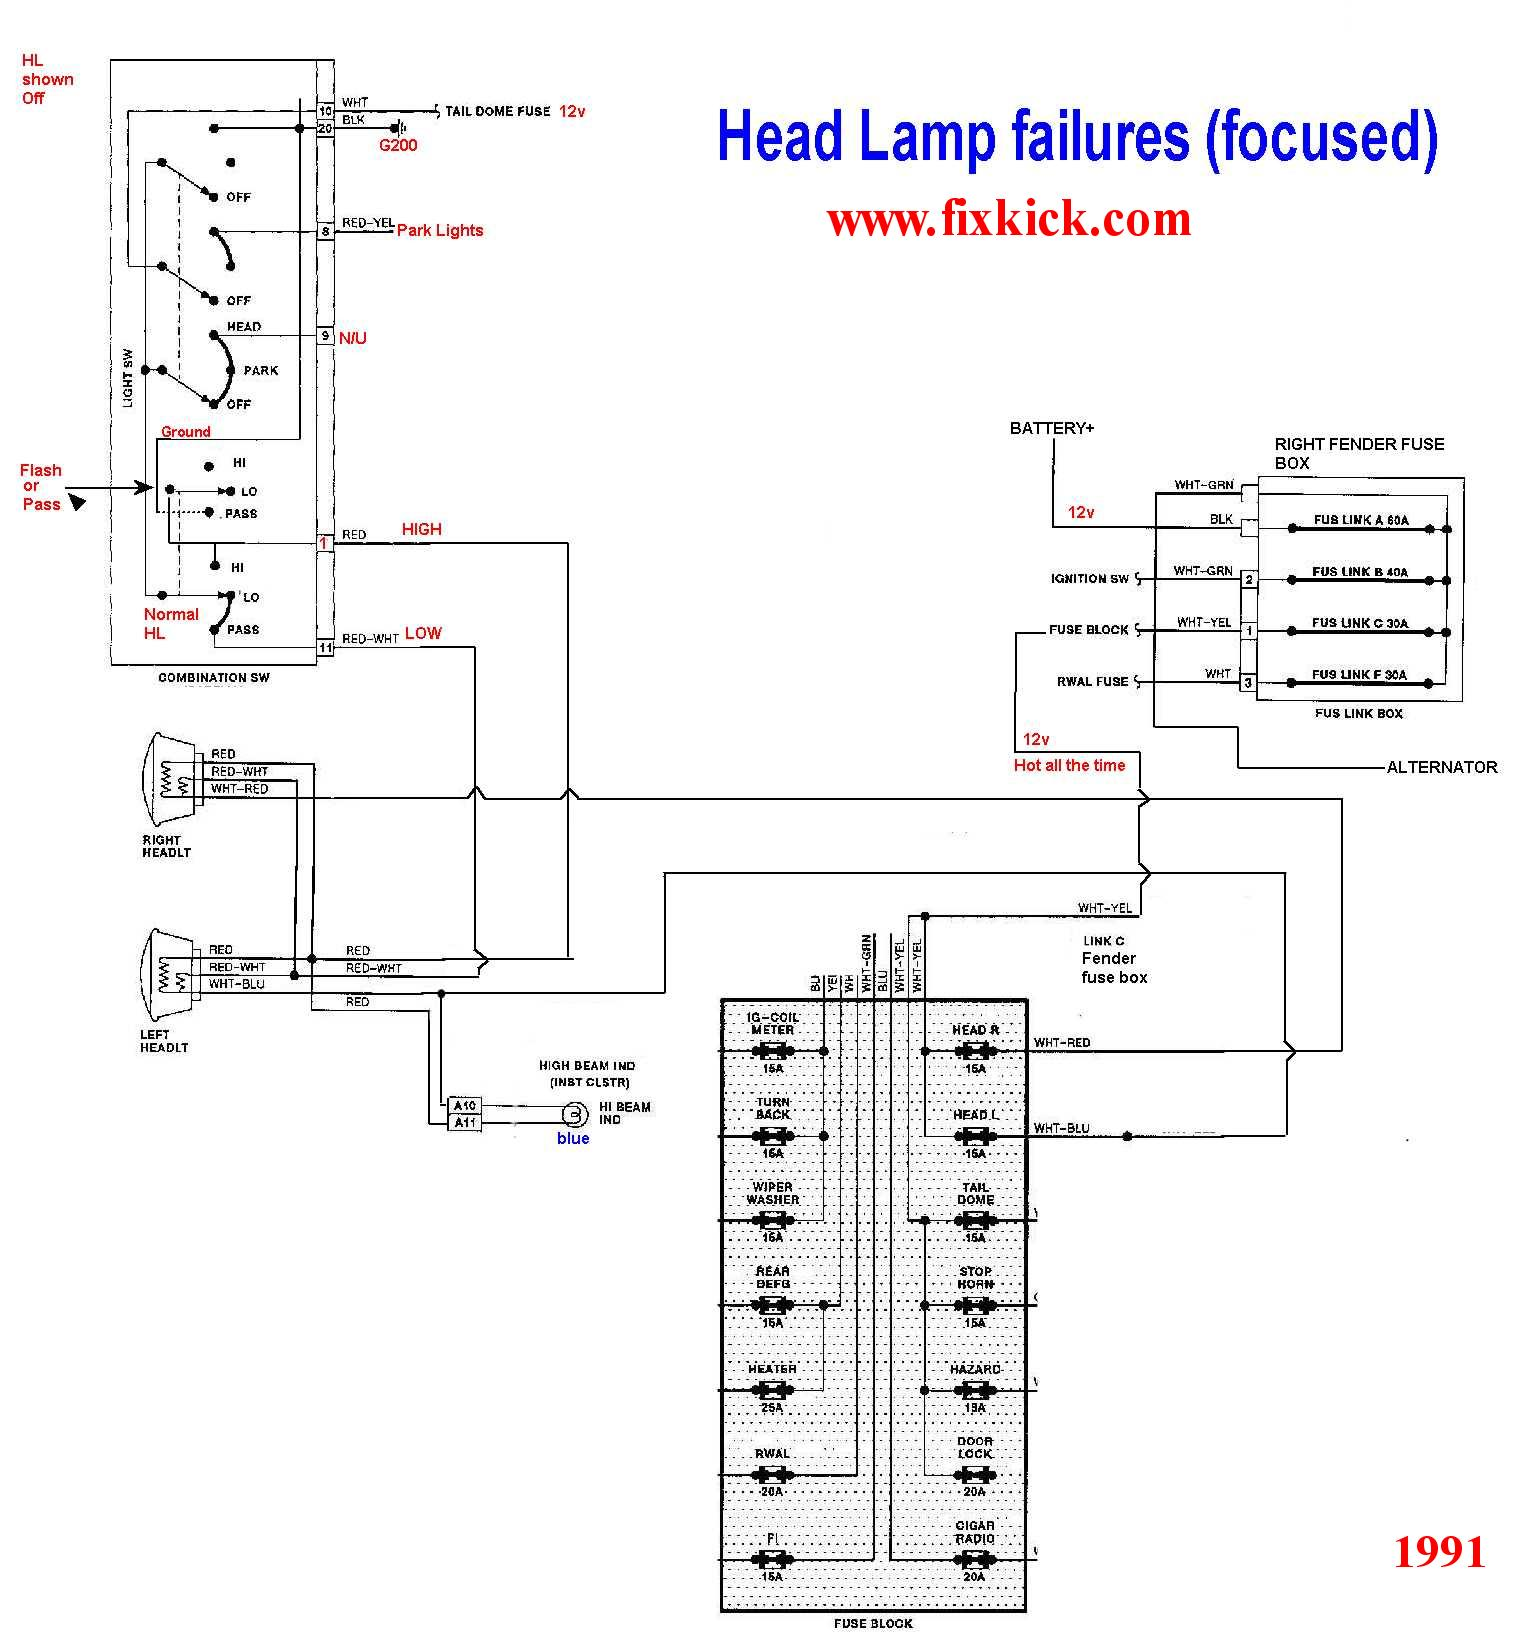 hight resolution of 95 tracker fuse box diagram wiring diagram for you1995 geo tracker fuse box diagram wiring diagram